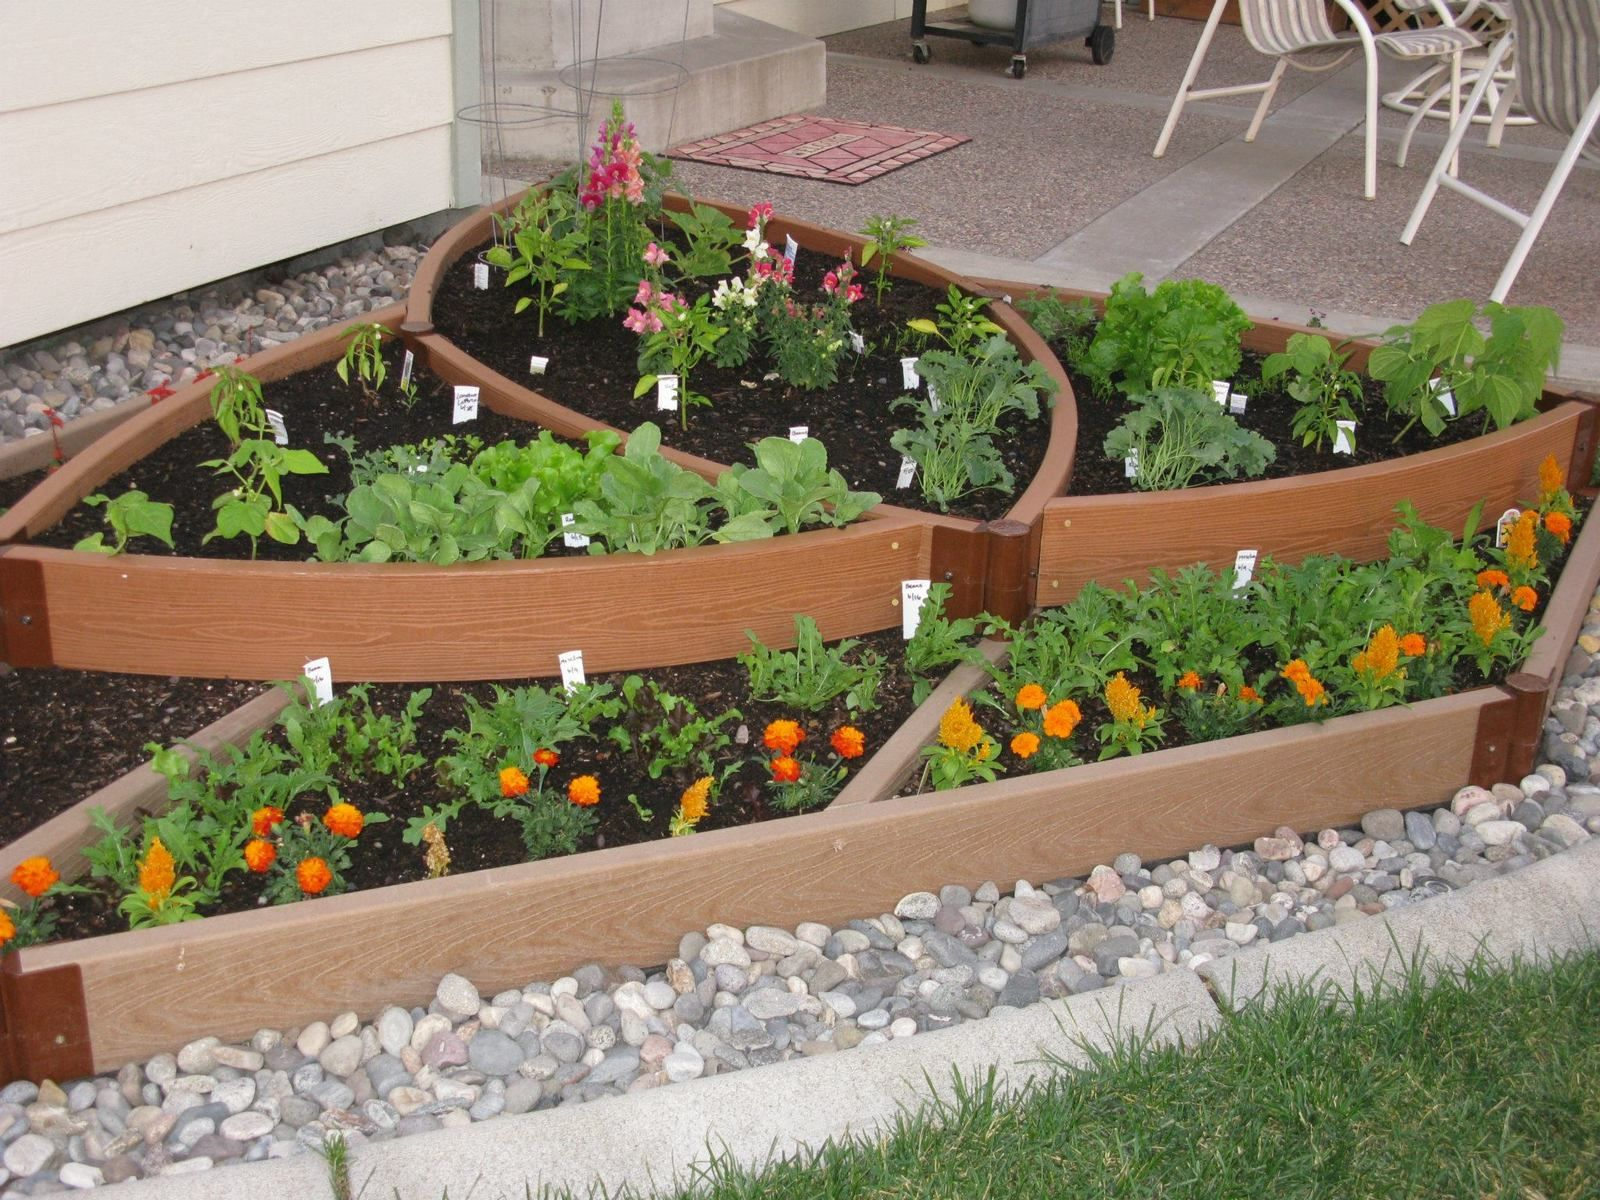 Raised garden raised garden bed kits for sale and buy raised clay pipe planter pinterest - Decorative vegetable garden ideas stylish green ...